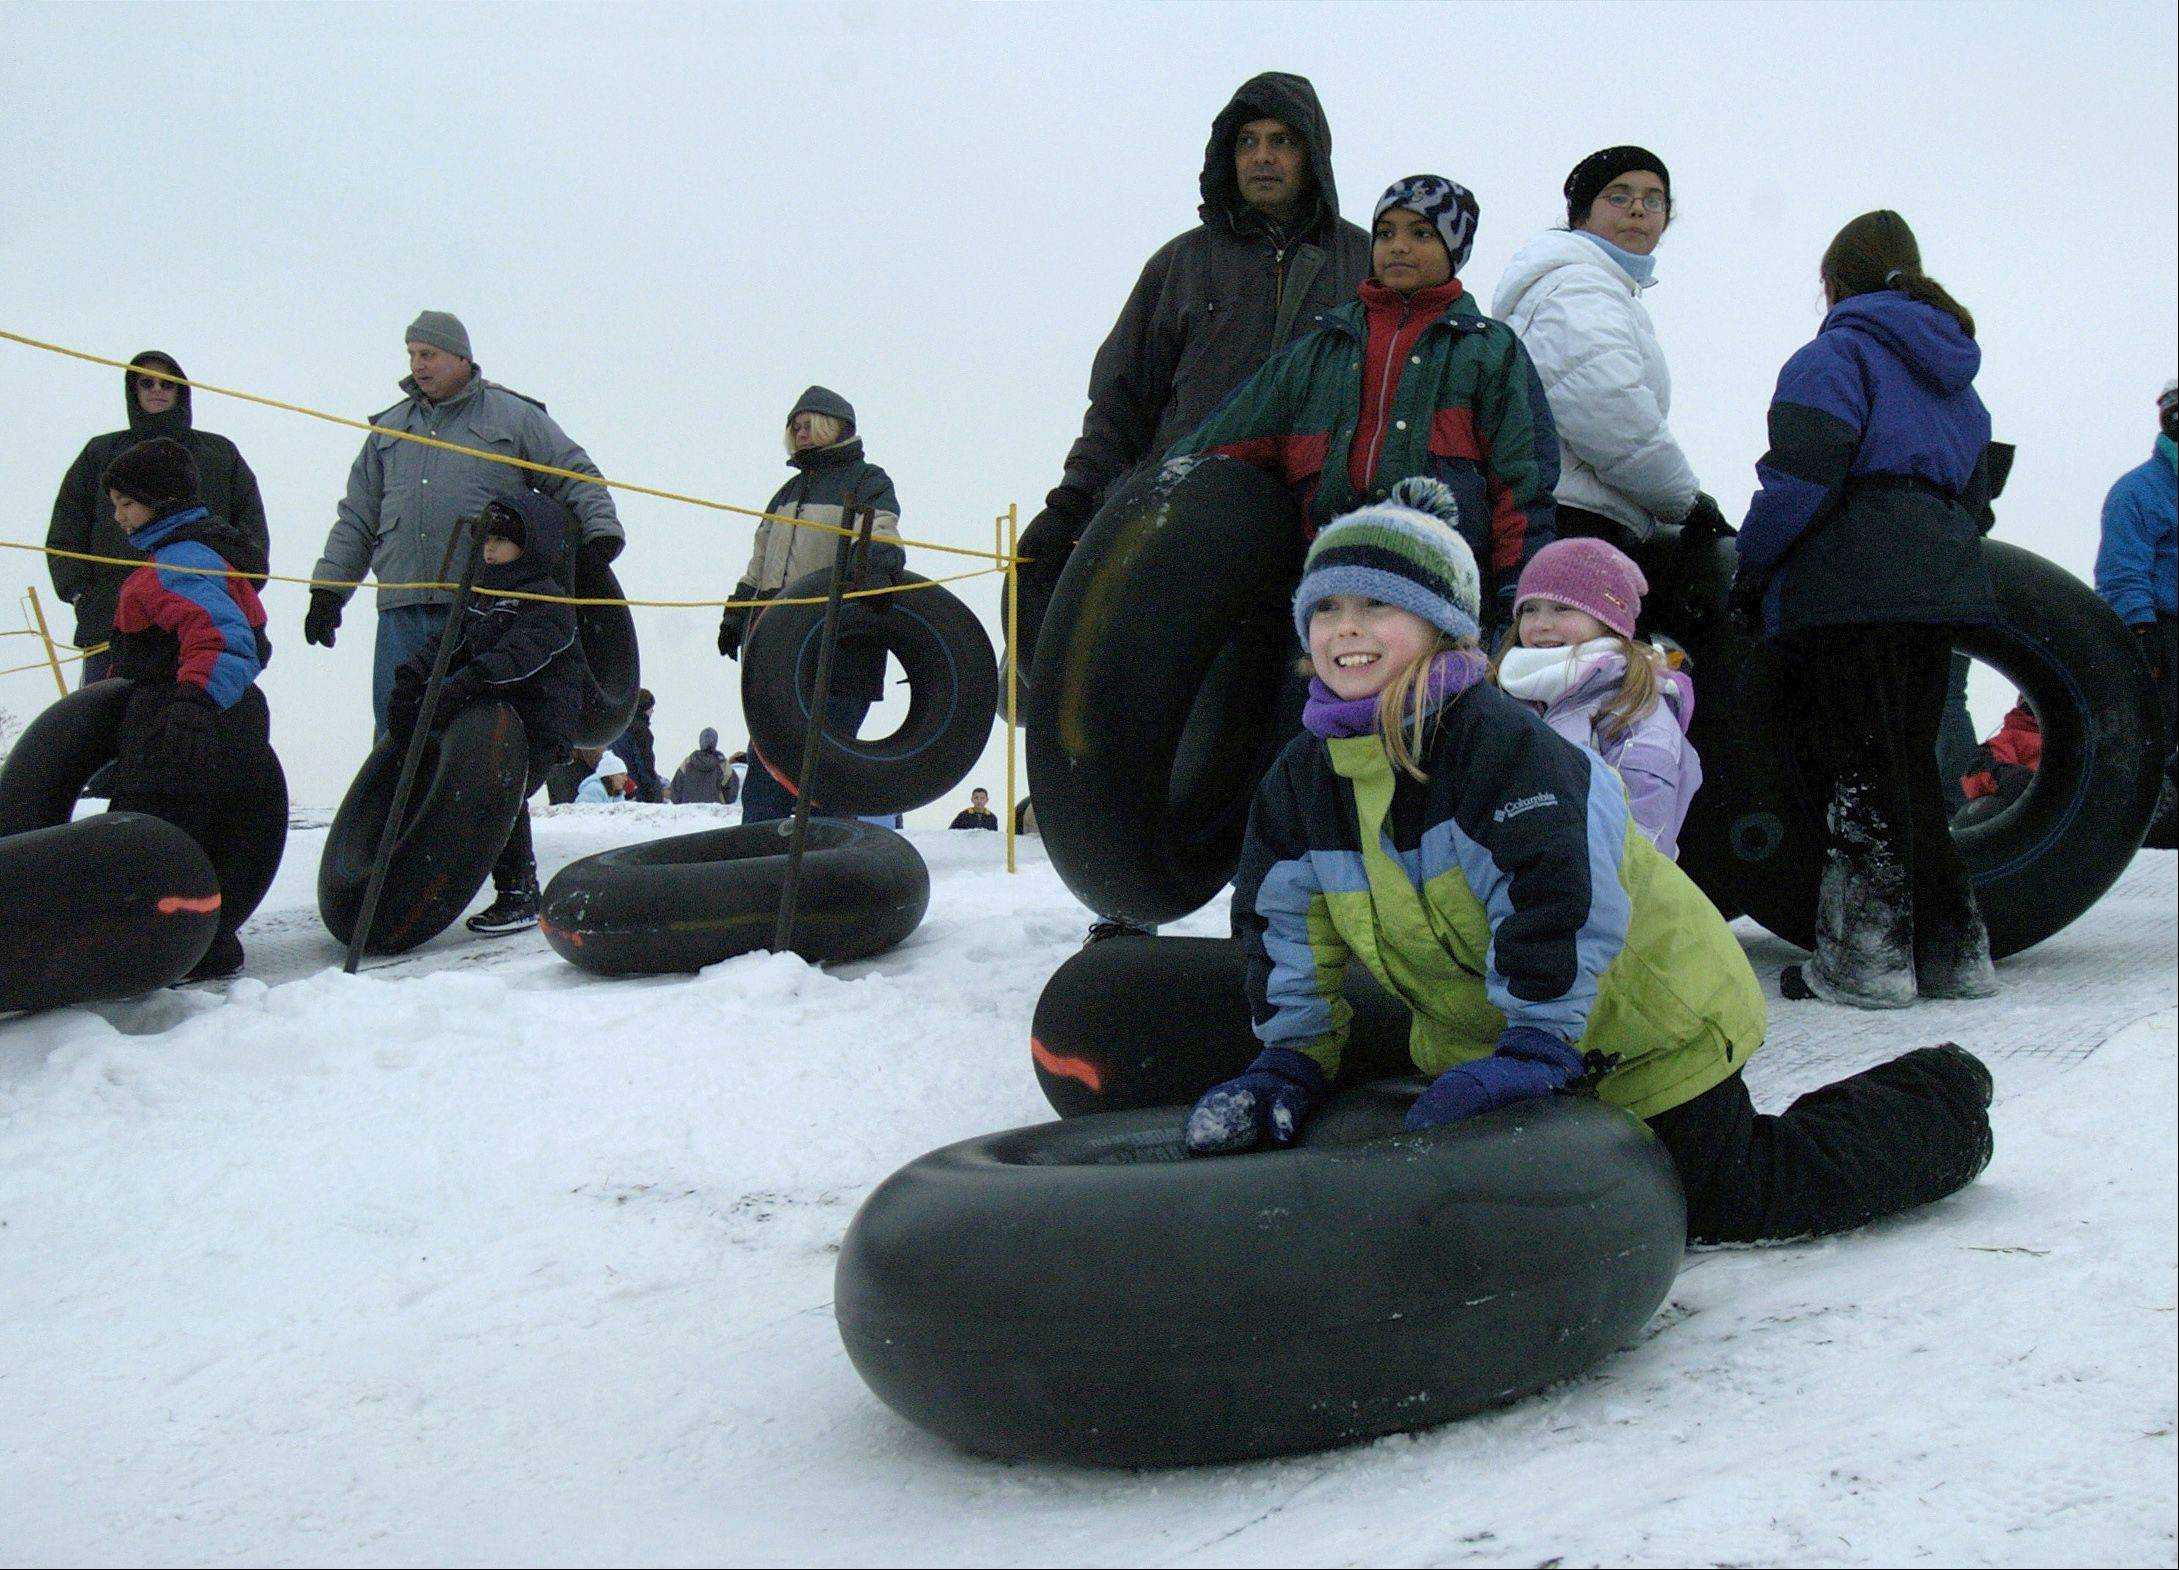 The tubing hill at Mount Hoy at Blackwell Forest Preserve near Warrenville offers rides down an 800-foot run.